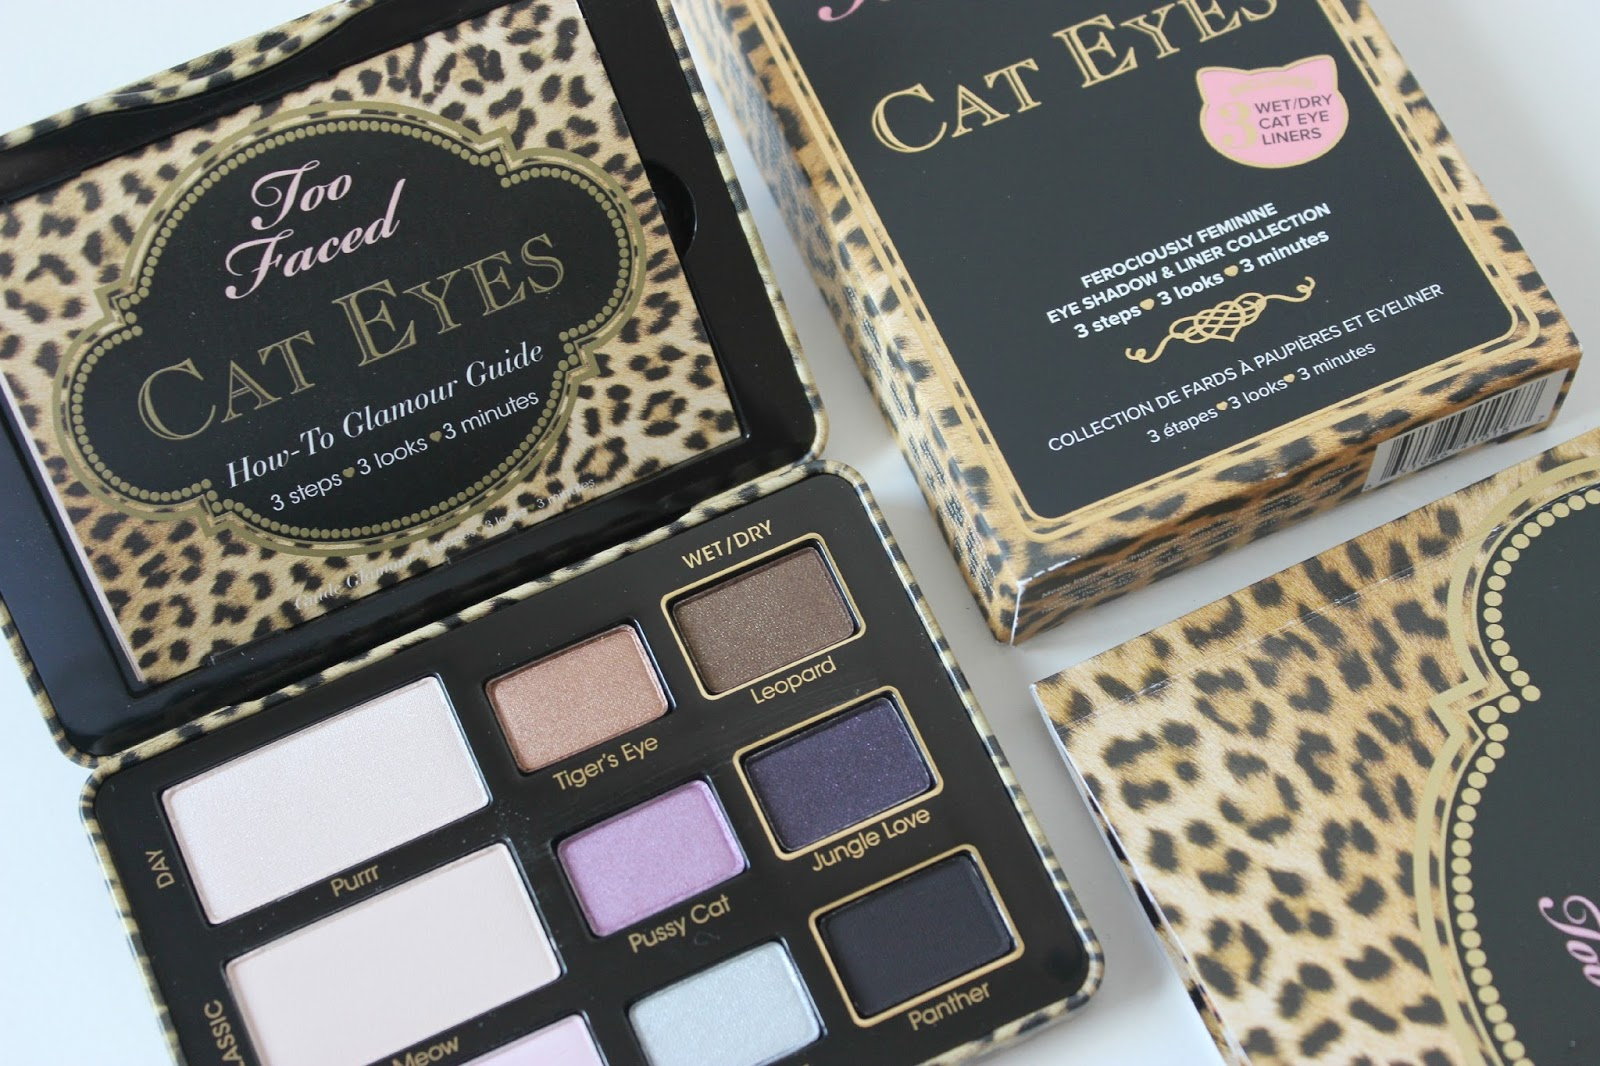 A picture of Too Faced Cat Eyes Palette